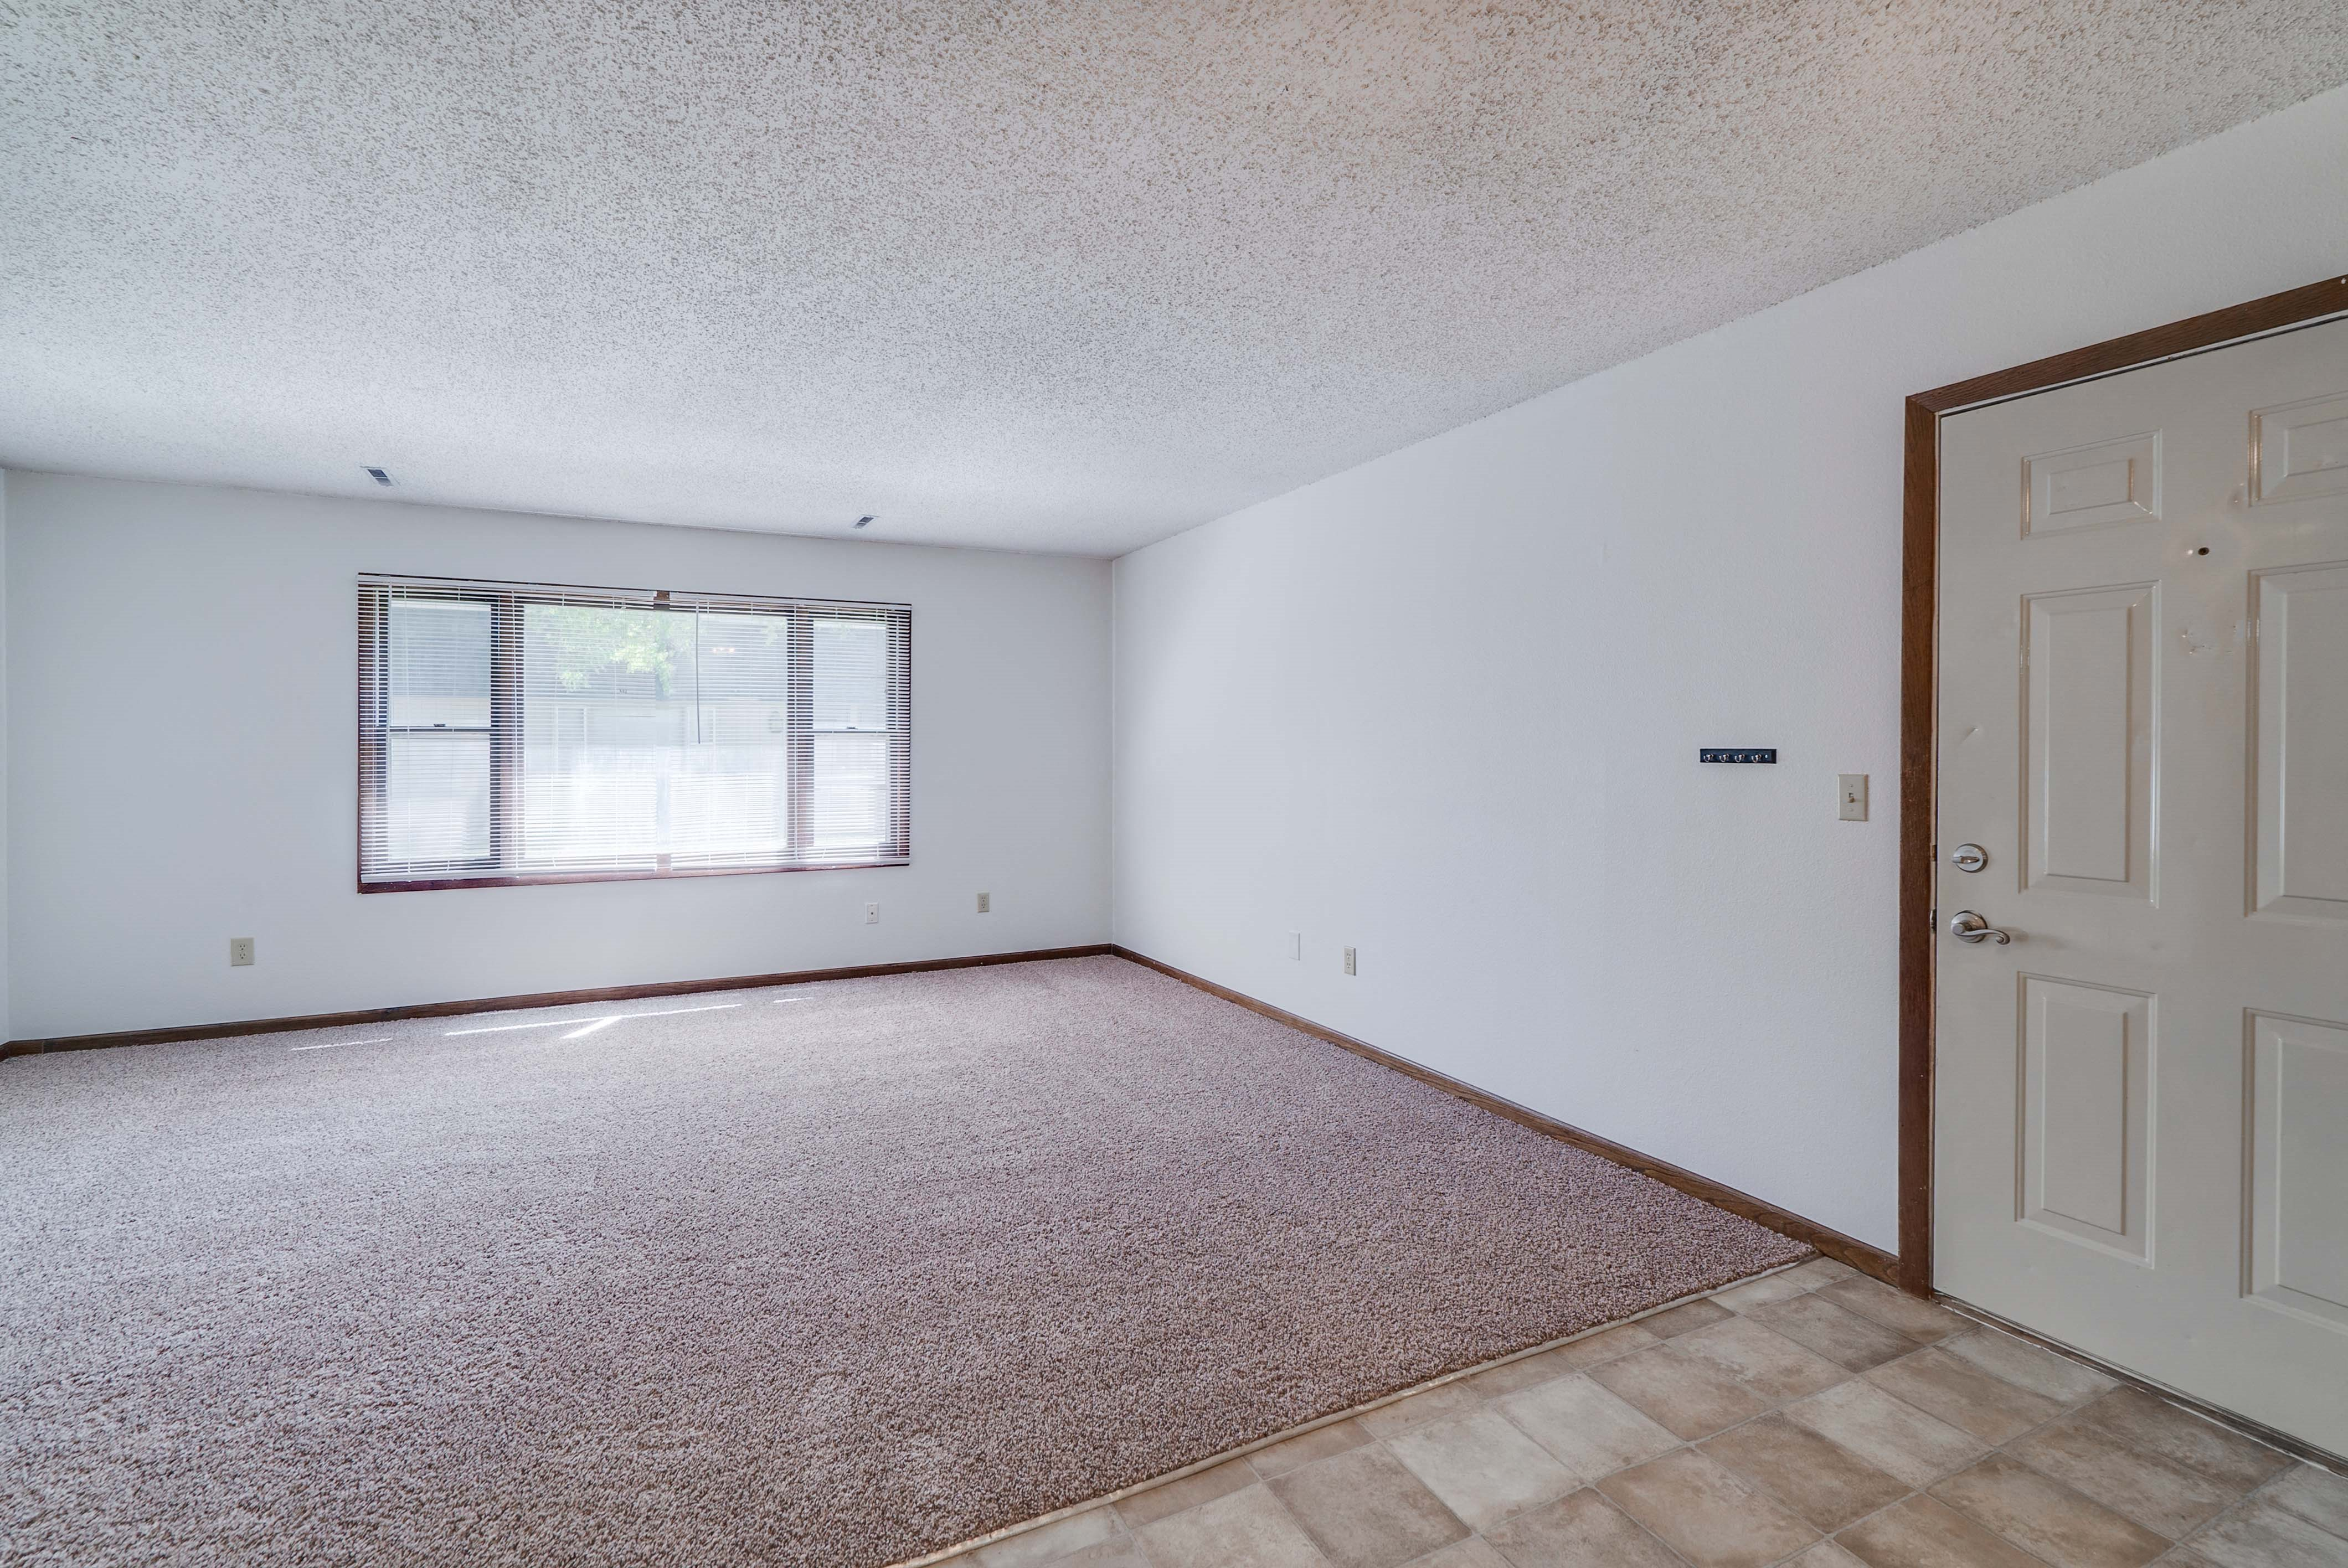 Open floor plan living space with large windows at South View Apartments